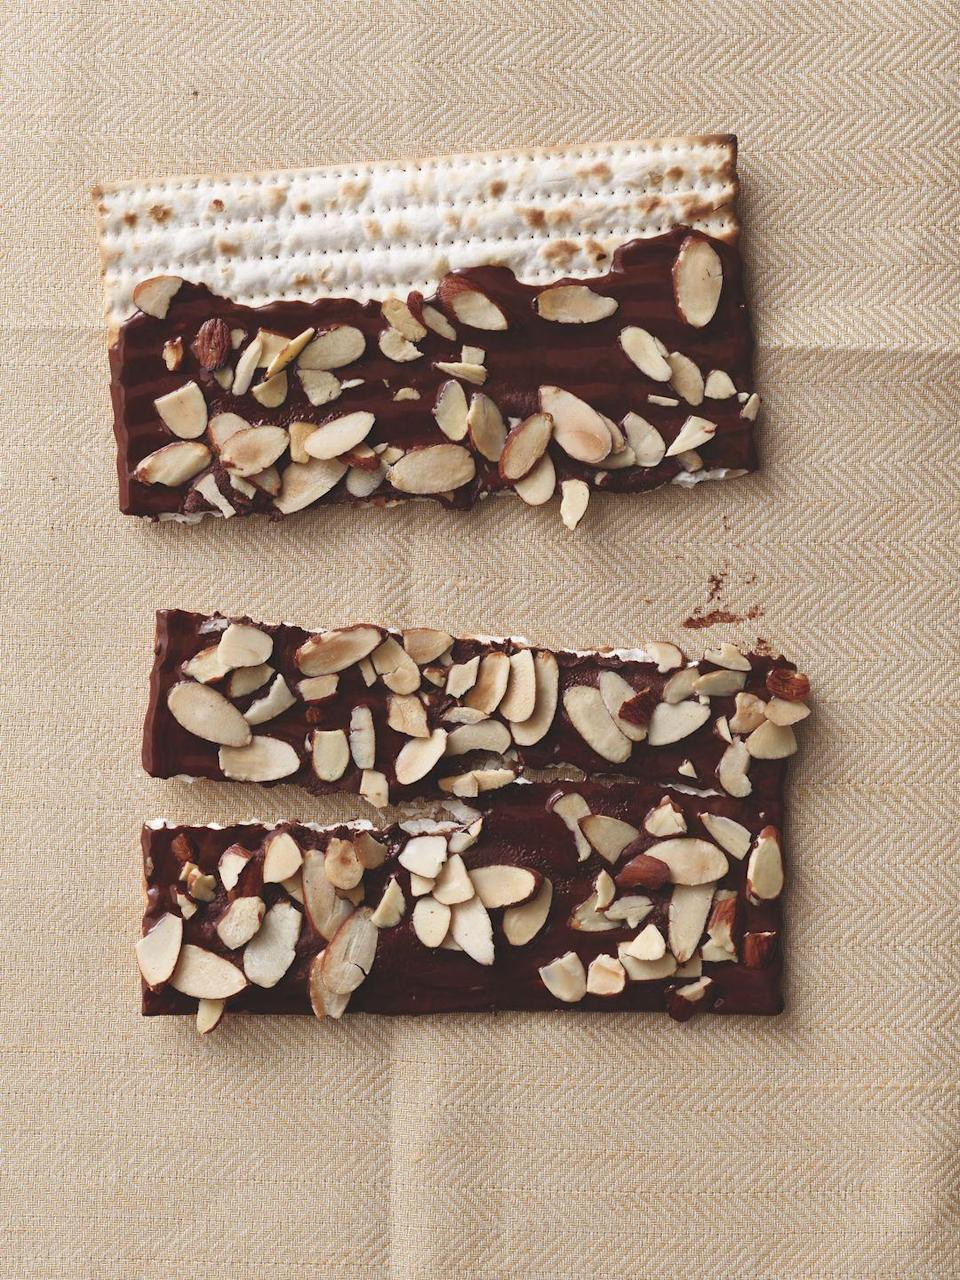 """<p>Brush matzo with chocolate, then pile on the toppings!</p><p><em><a href=""""https://www.womansday.com/food-recipes/food-drinks/recipes/a11947/chocolate-covered-matzo-recipe-122899/"""" rel=""""nofollow noopener"""" target=""""_blank"""" data-ylk=""""slk:Get the recipe from Woman's Day »"""" class=""""link rapid-noclick-resp"""">Get the recipe from Woman's Day »</a></em></p>"""